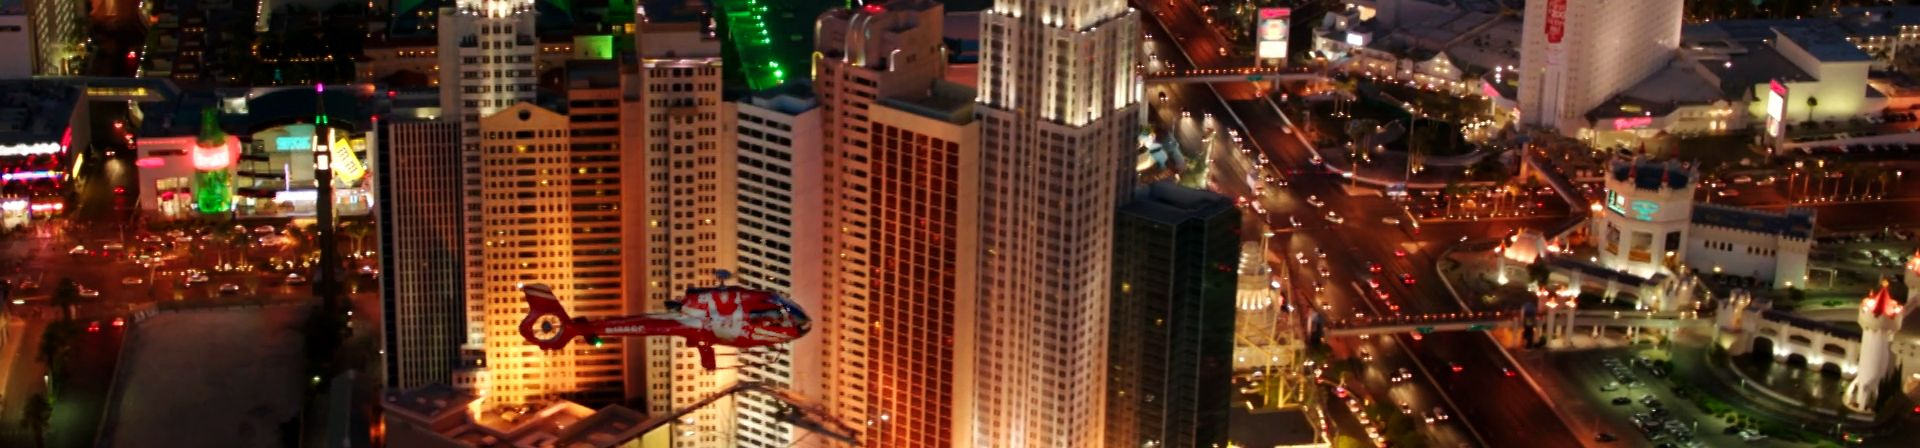 Helicopter flying past New York New York Hotel on Las Vegas Strip.